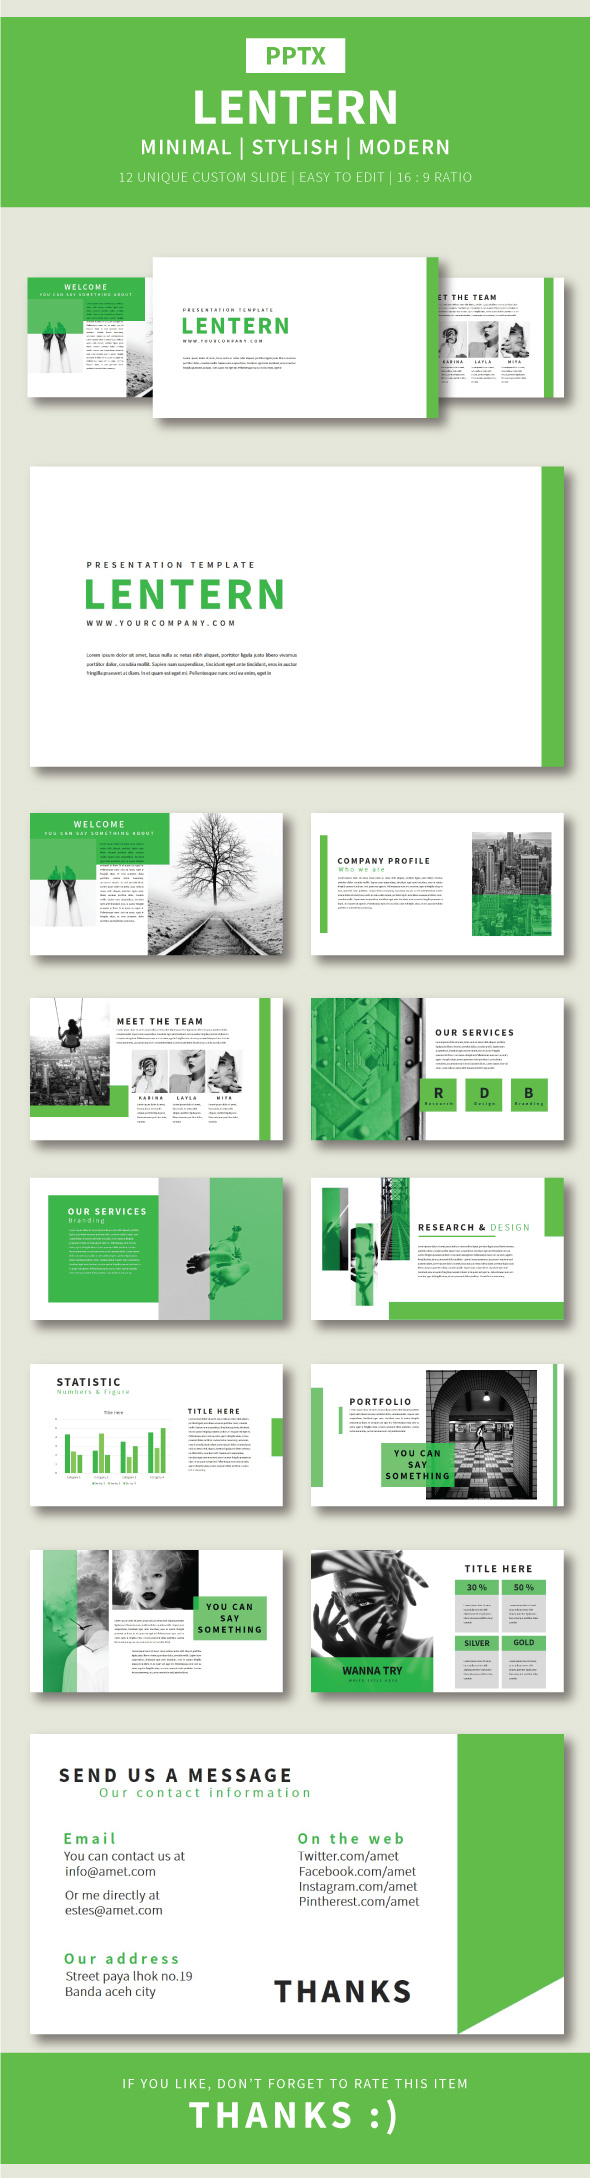 Lentern Pptx Template - Business PowerPoint Templates